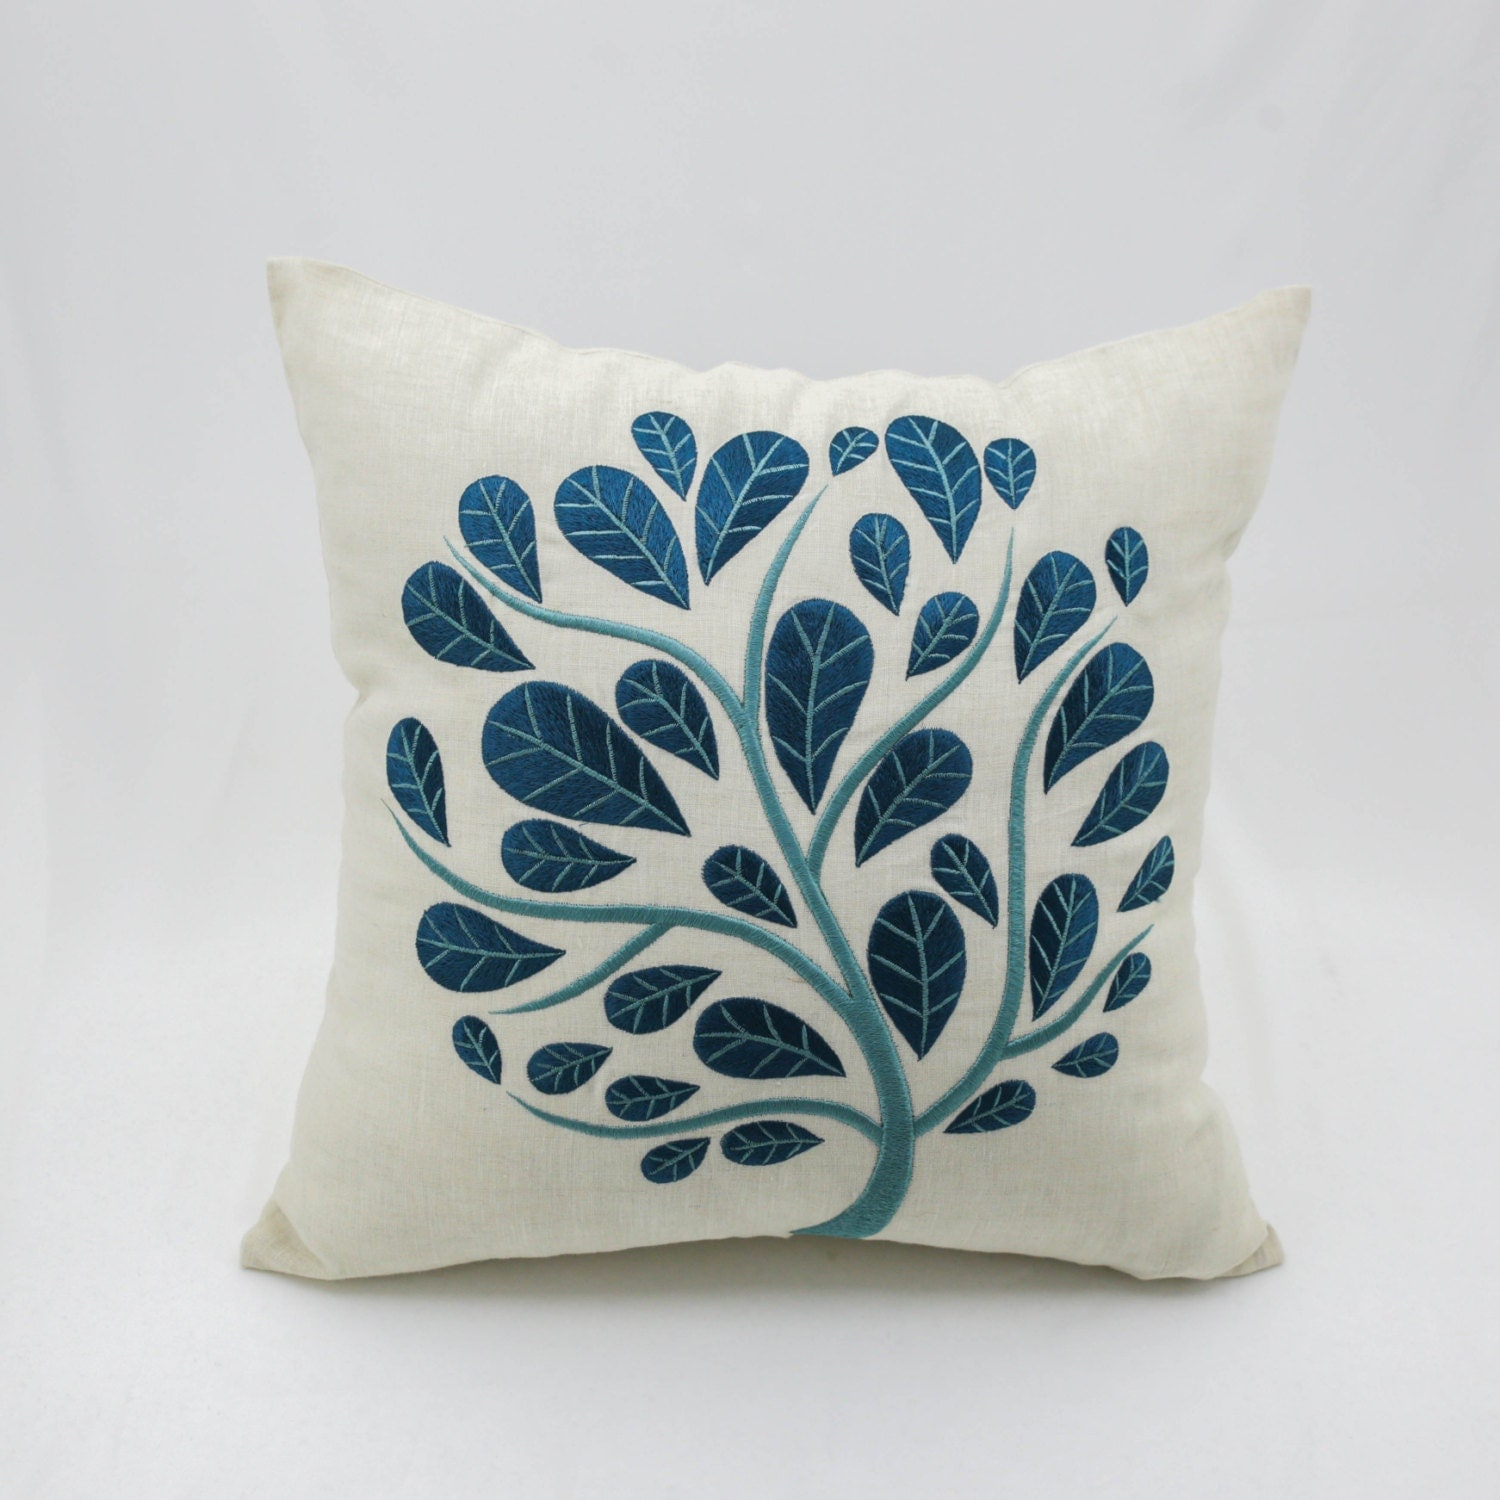 Peacock Pillow Cover, Beige Linen Teal Tree Embroidery, Floral Toss Pillow,  Botanical Decor